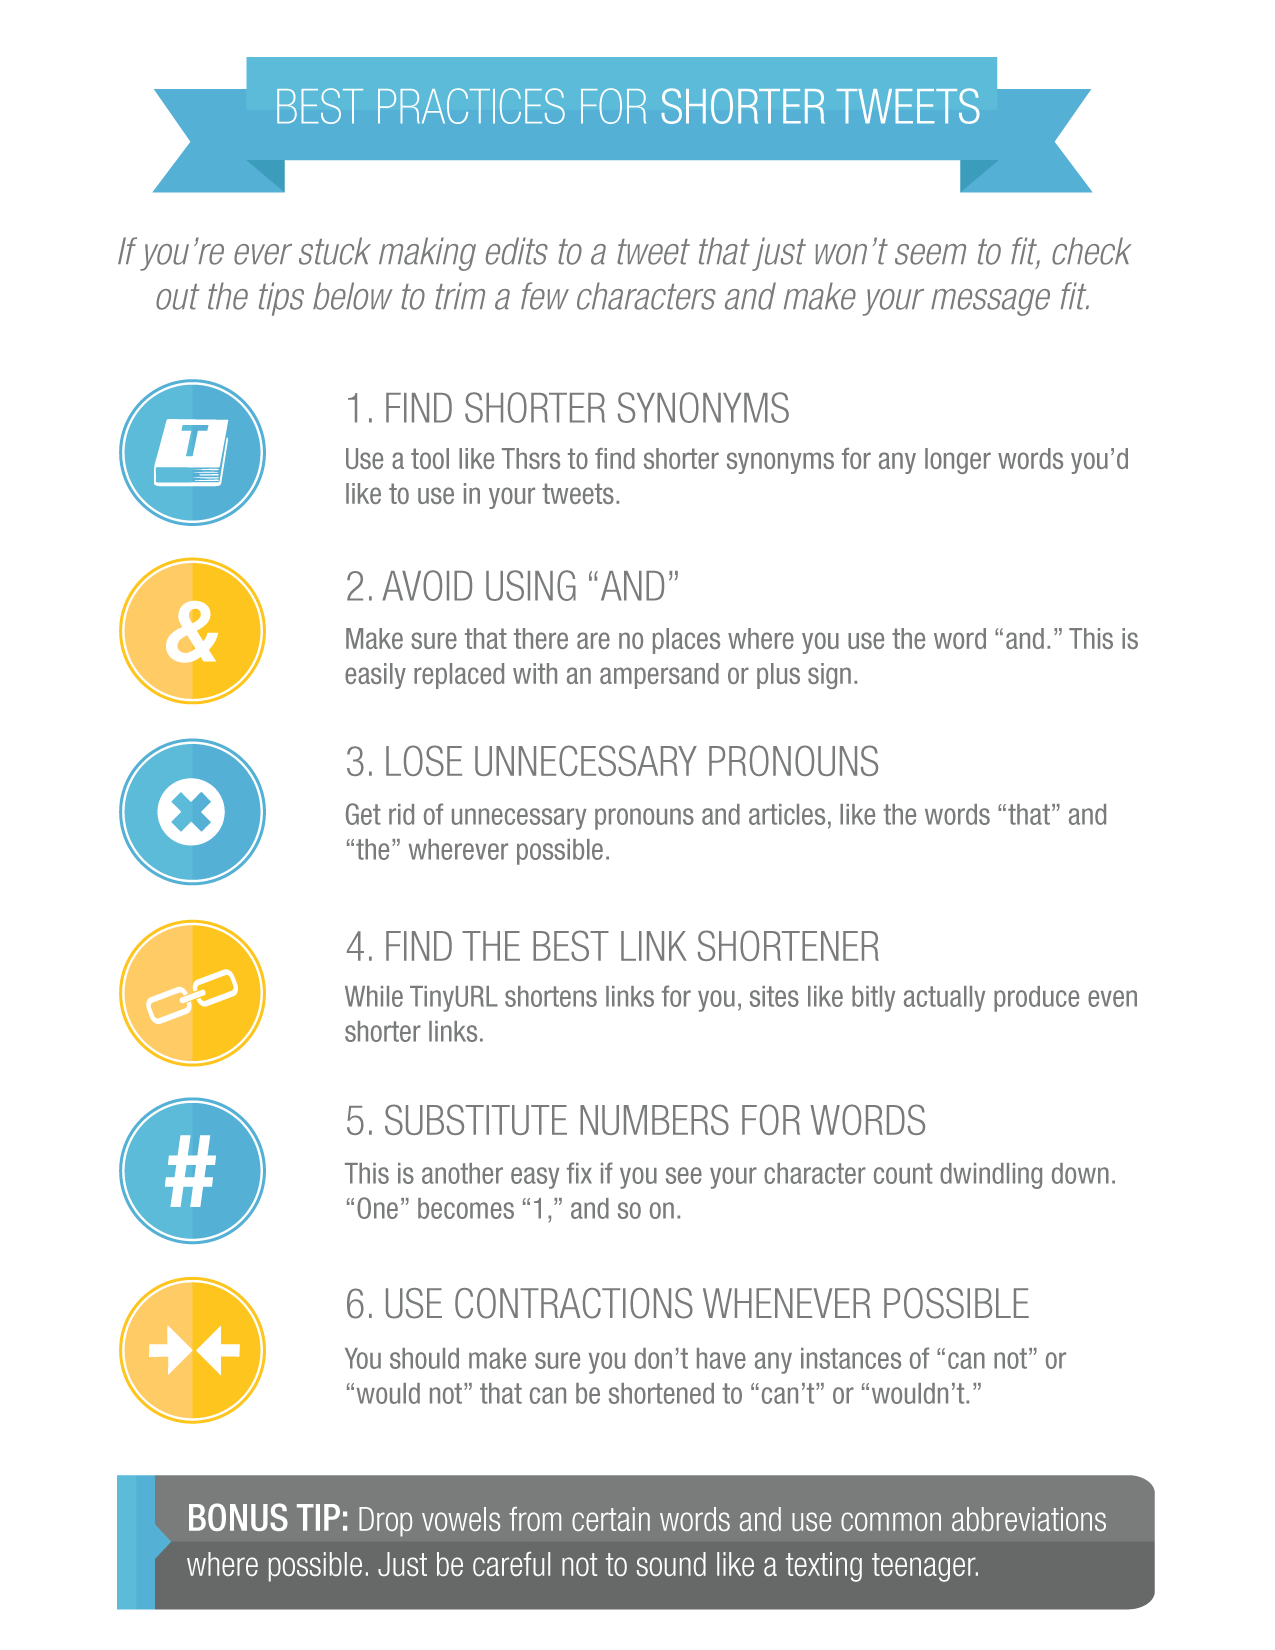 Best Practices For Shorter Tweets - infographic - how to craft/write short tweets